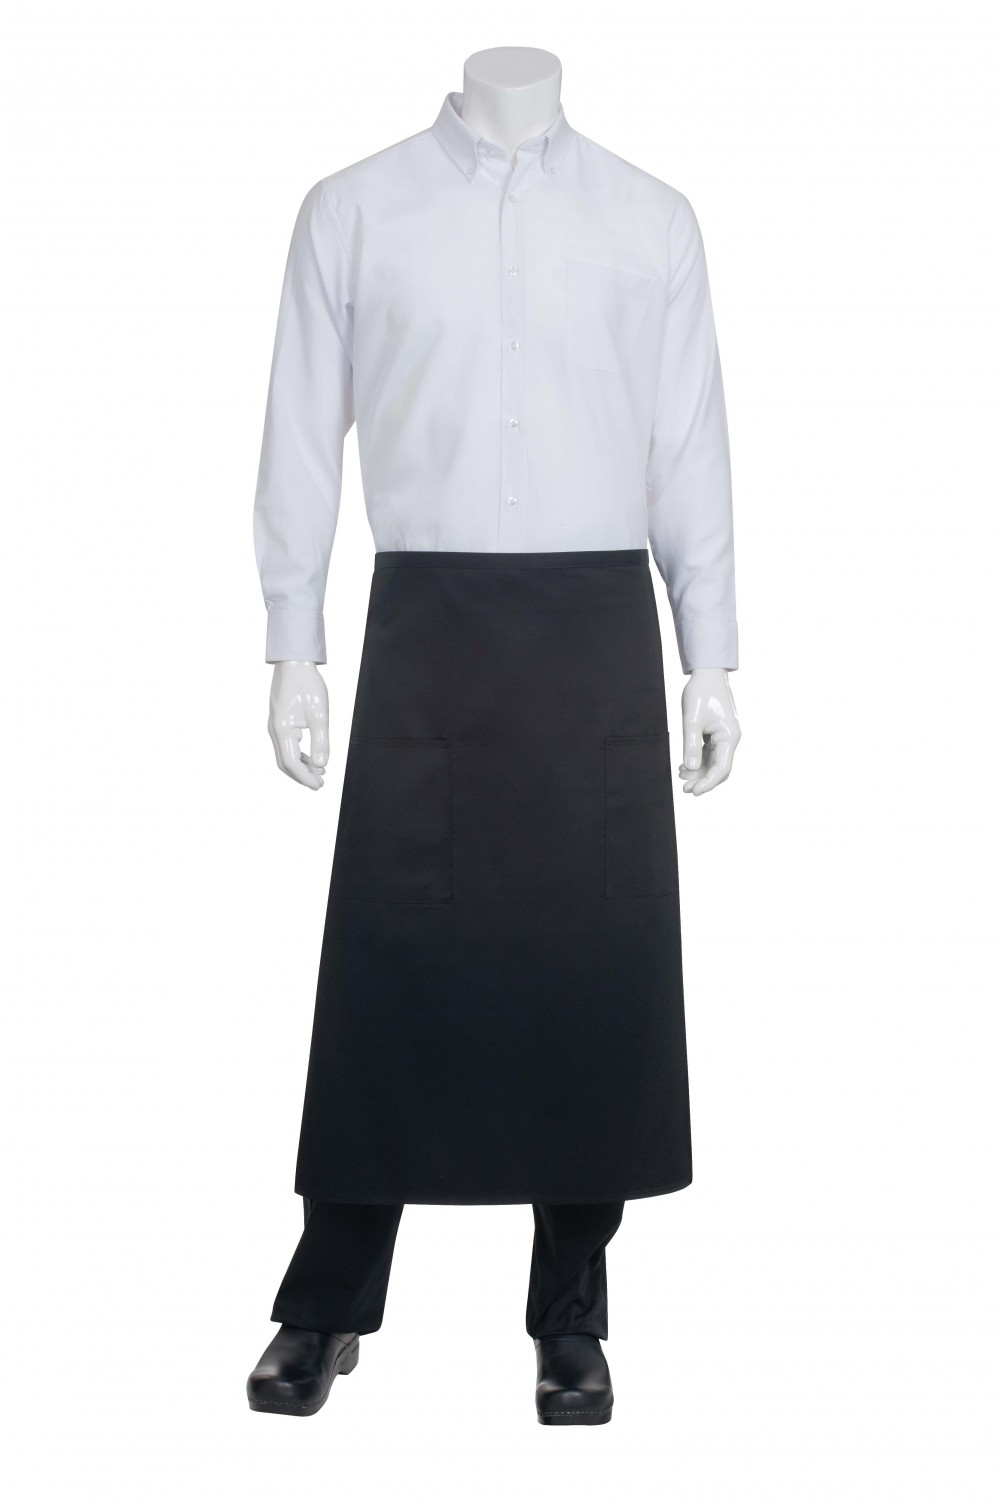 Chef Works 122A Two-Pocket Bistro Apron